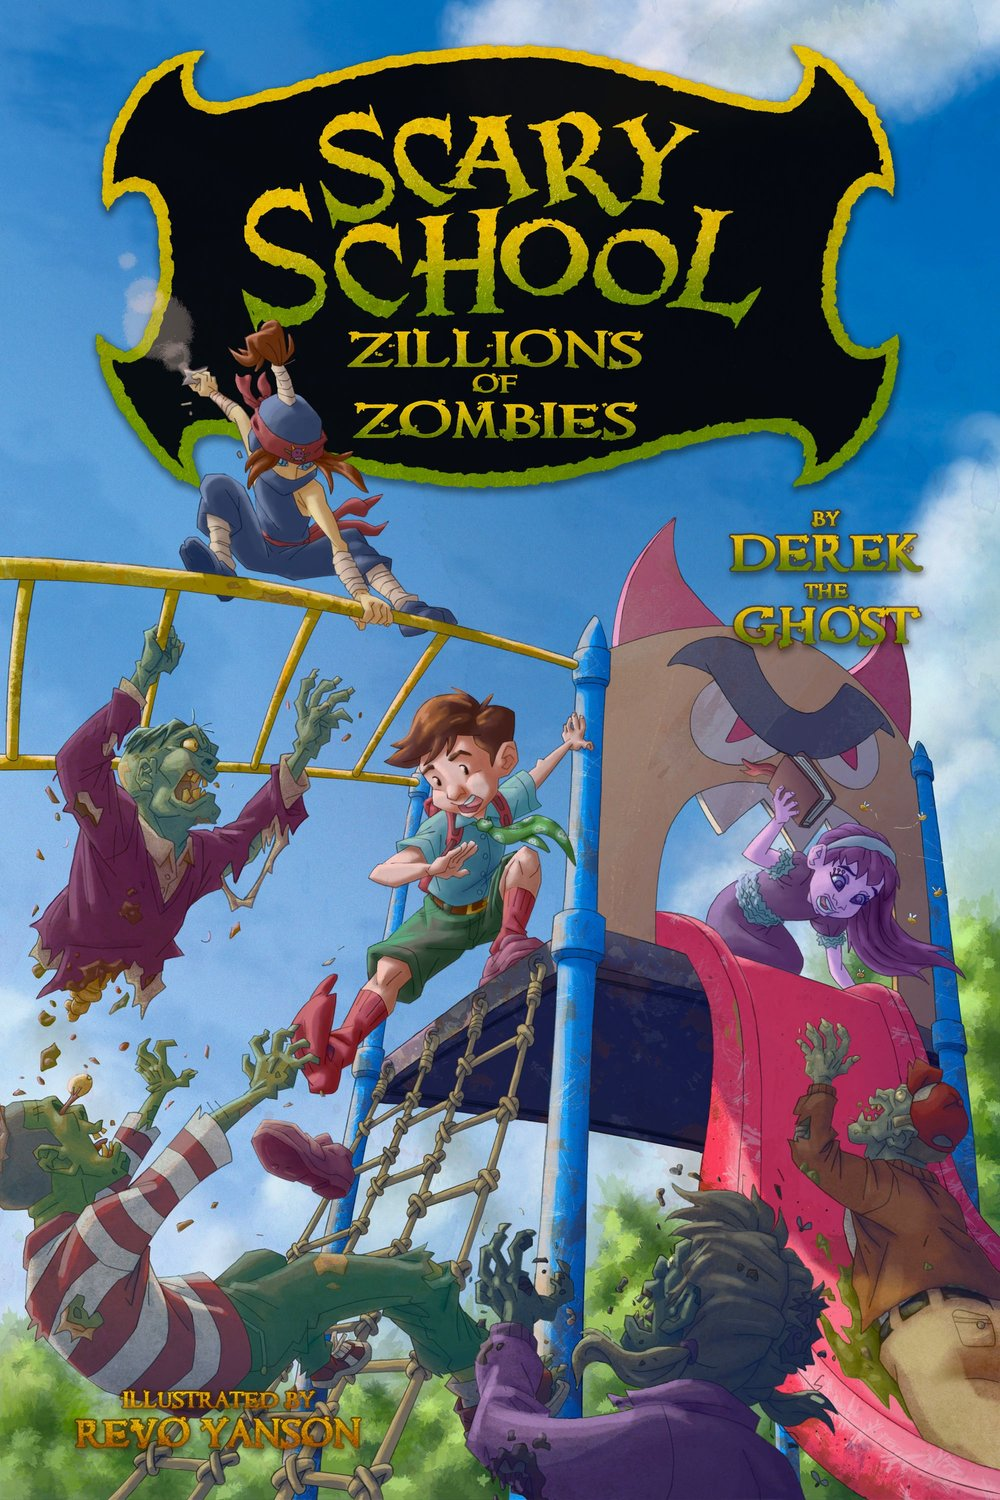 Scary School #4:Zillions of Zombies - Purchase on AmazonPurchase at Barnes and Noble